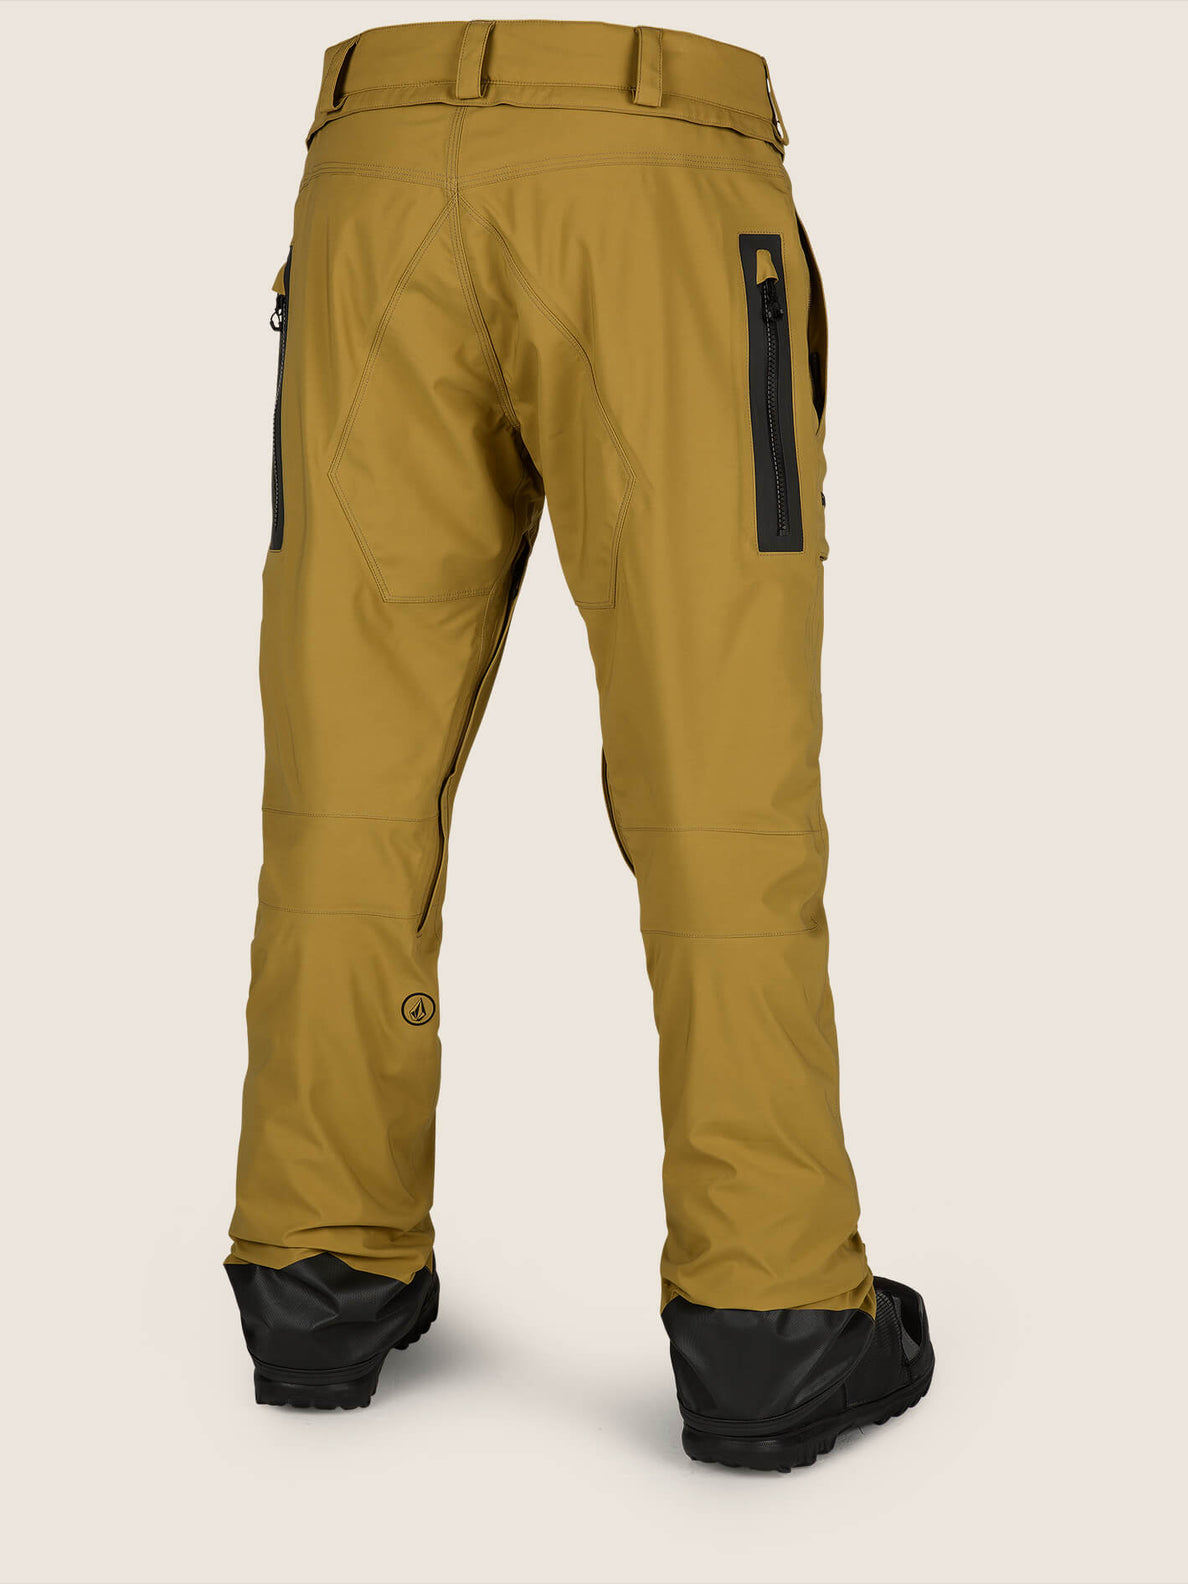 Stretch Gore-tex Pant In Resin Gold, Back View